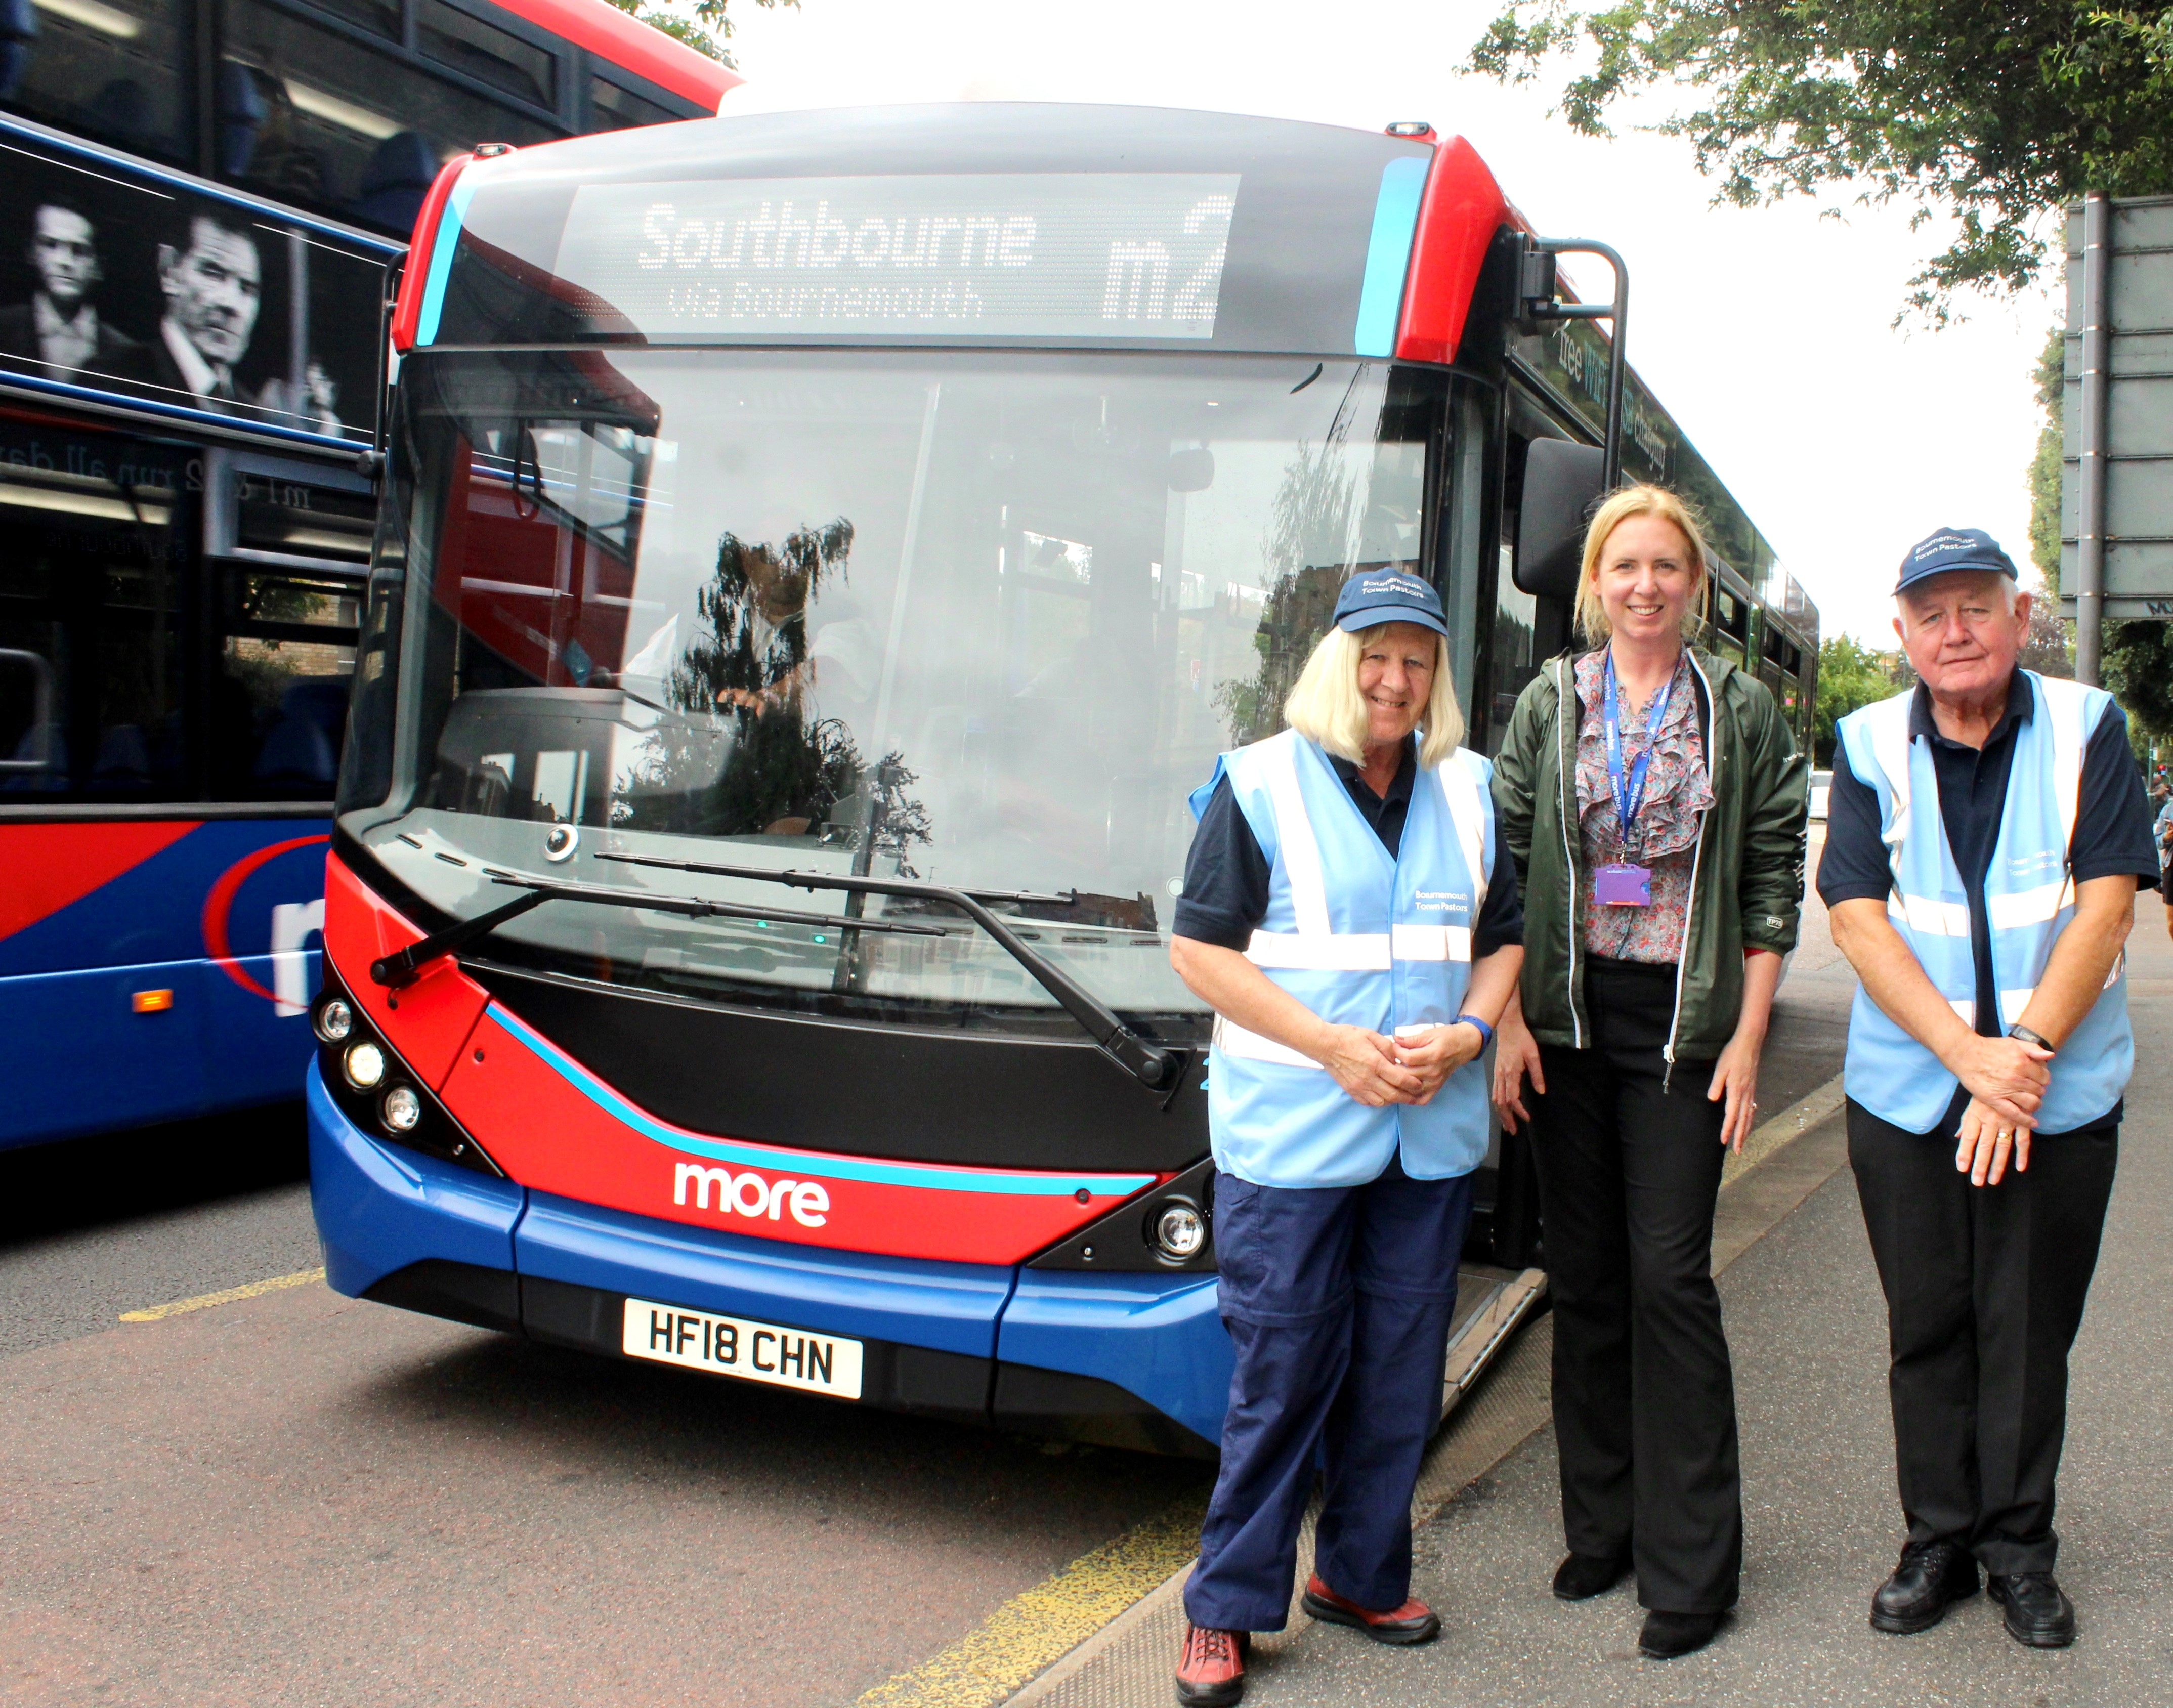 morebus and the bournemouth town pastors partnership